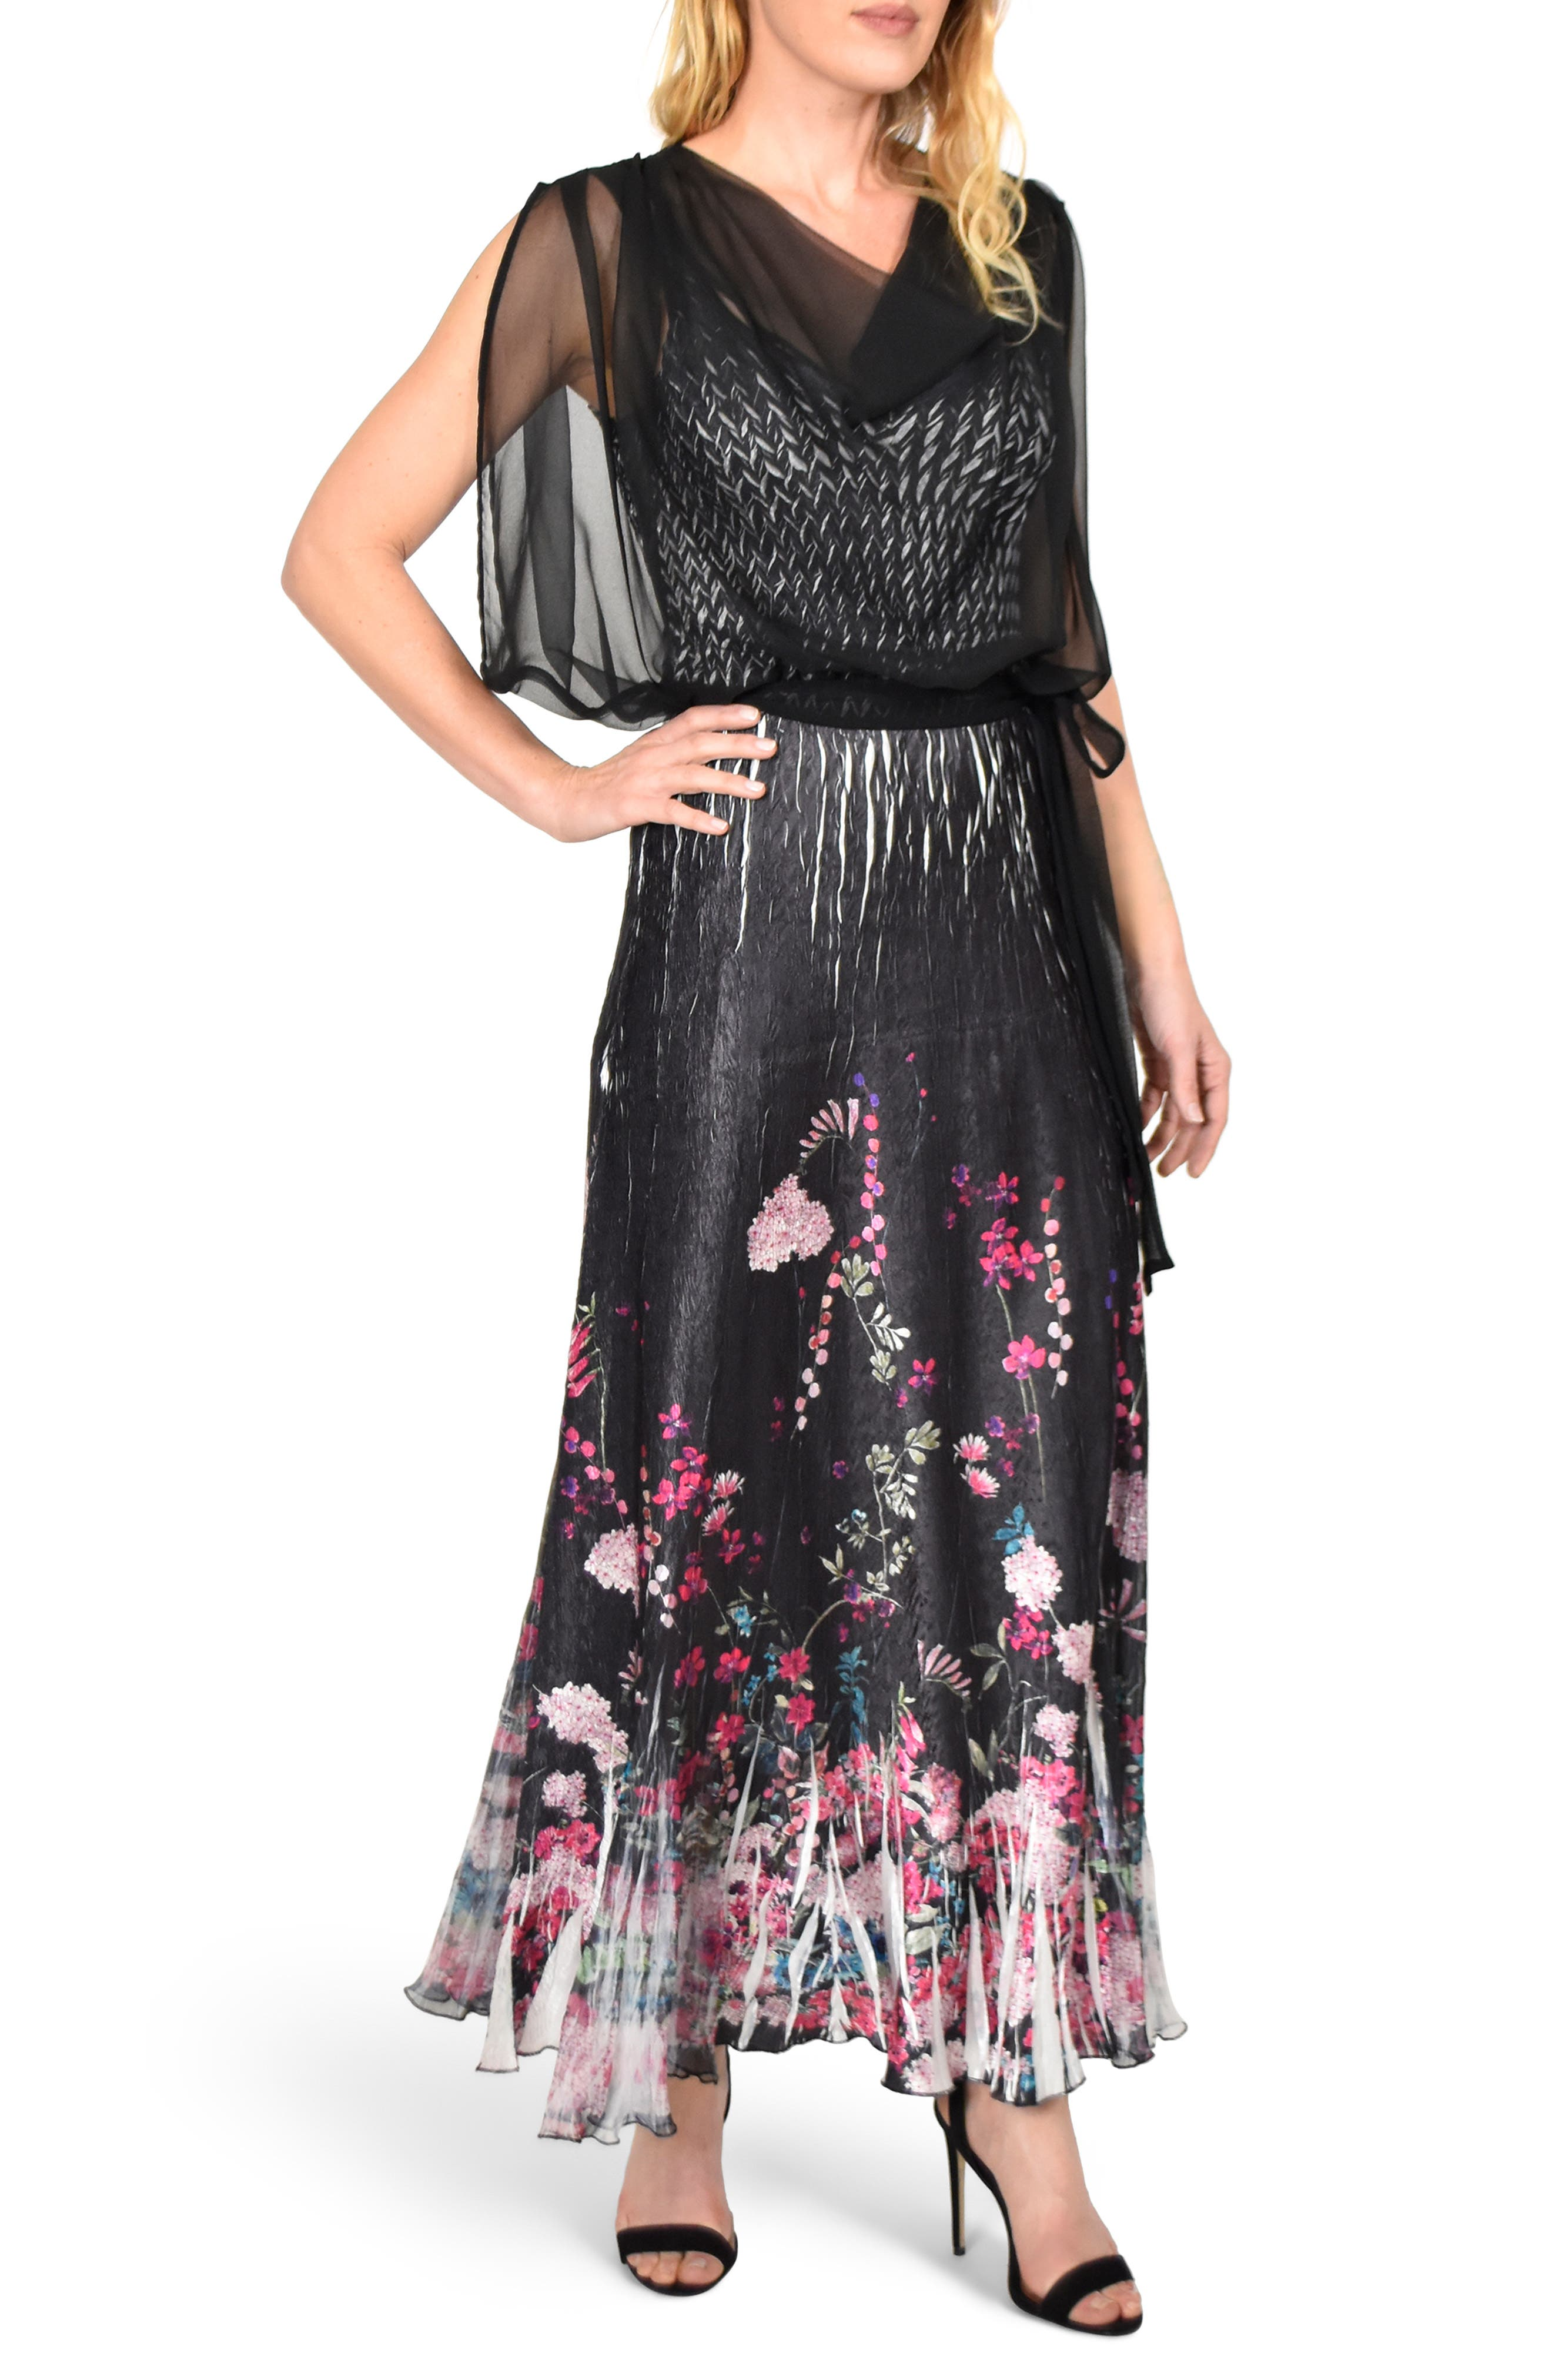 1920s, 1930s Mother of the Bride Groom Dresses Womens Komarov Chiffon Popover Charmeuse Gown $398.00 AT vintagedancer.com